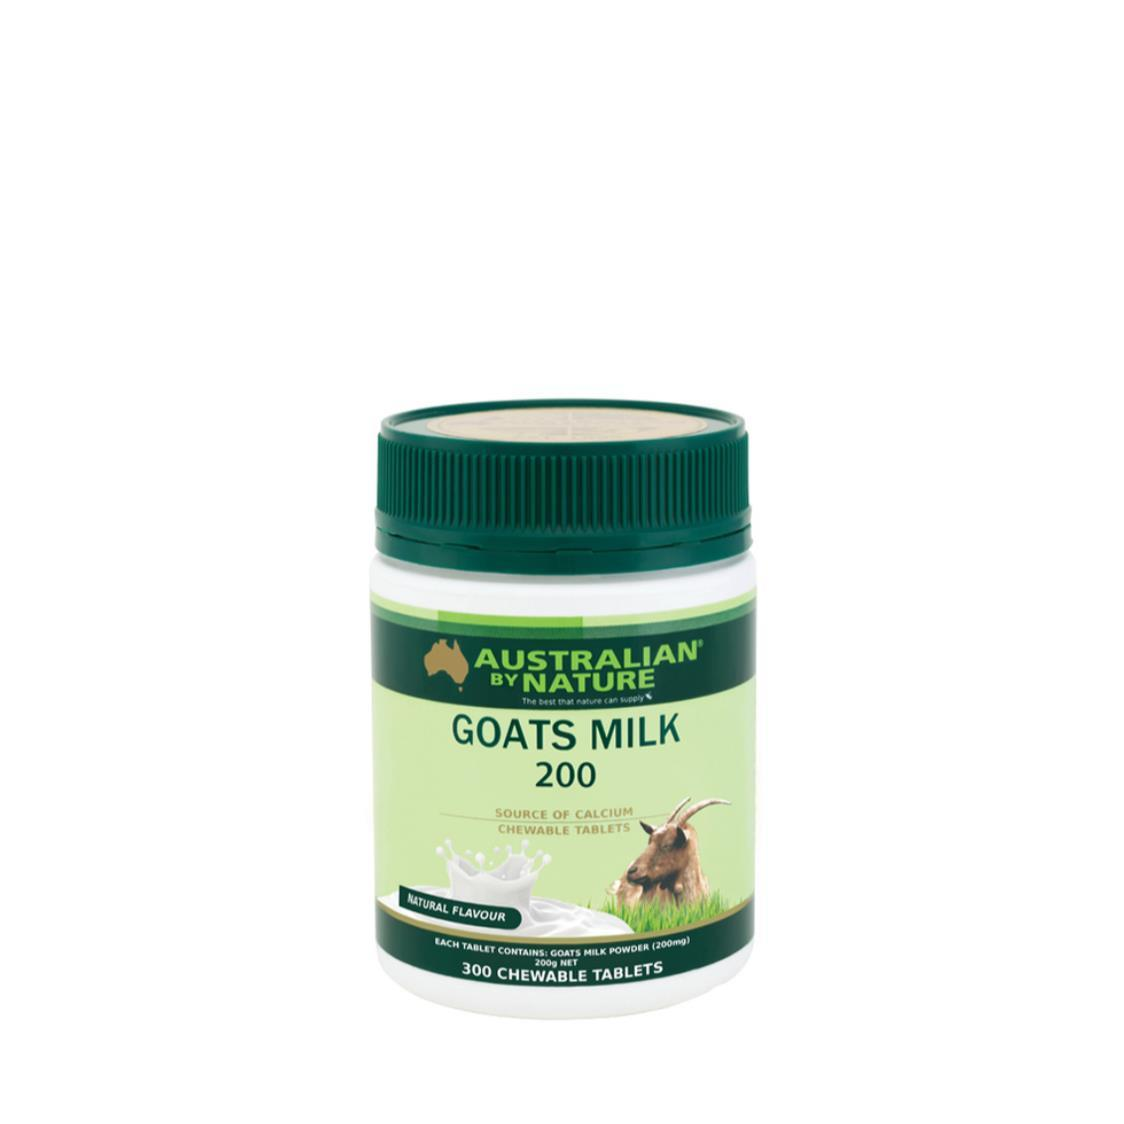 Goats Milk 200mg Natural Flavour 300 Tablets